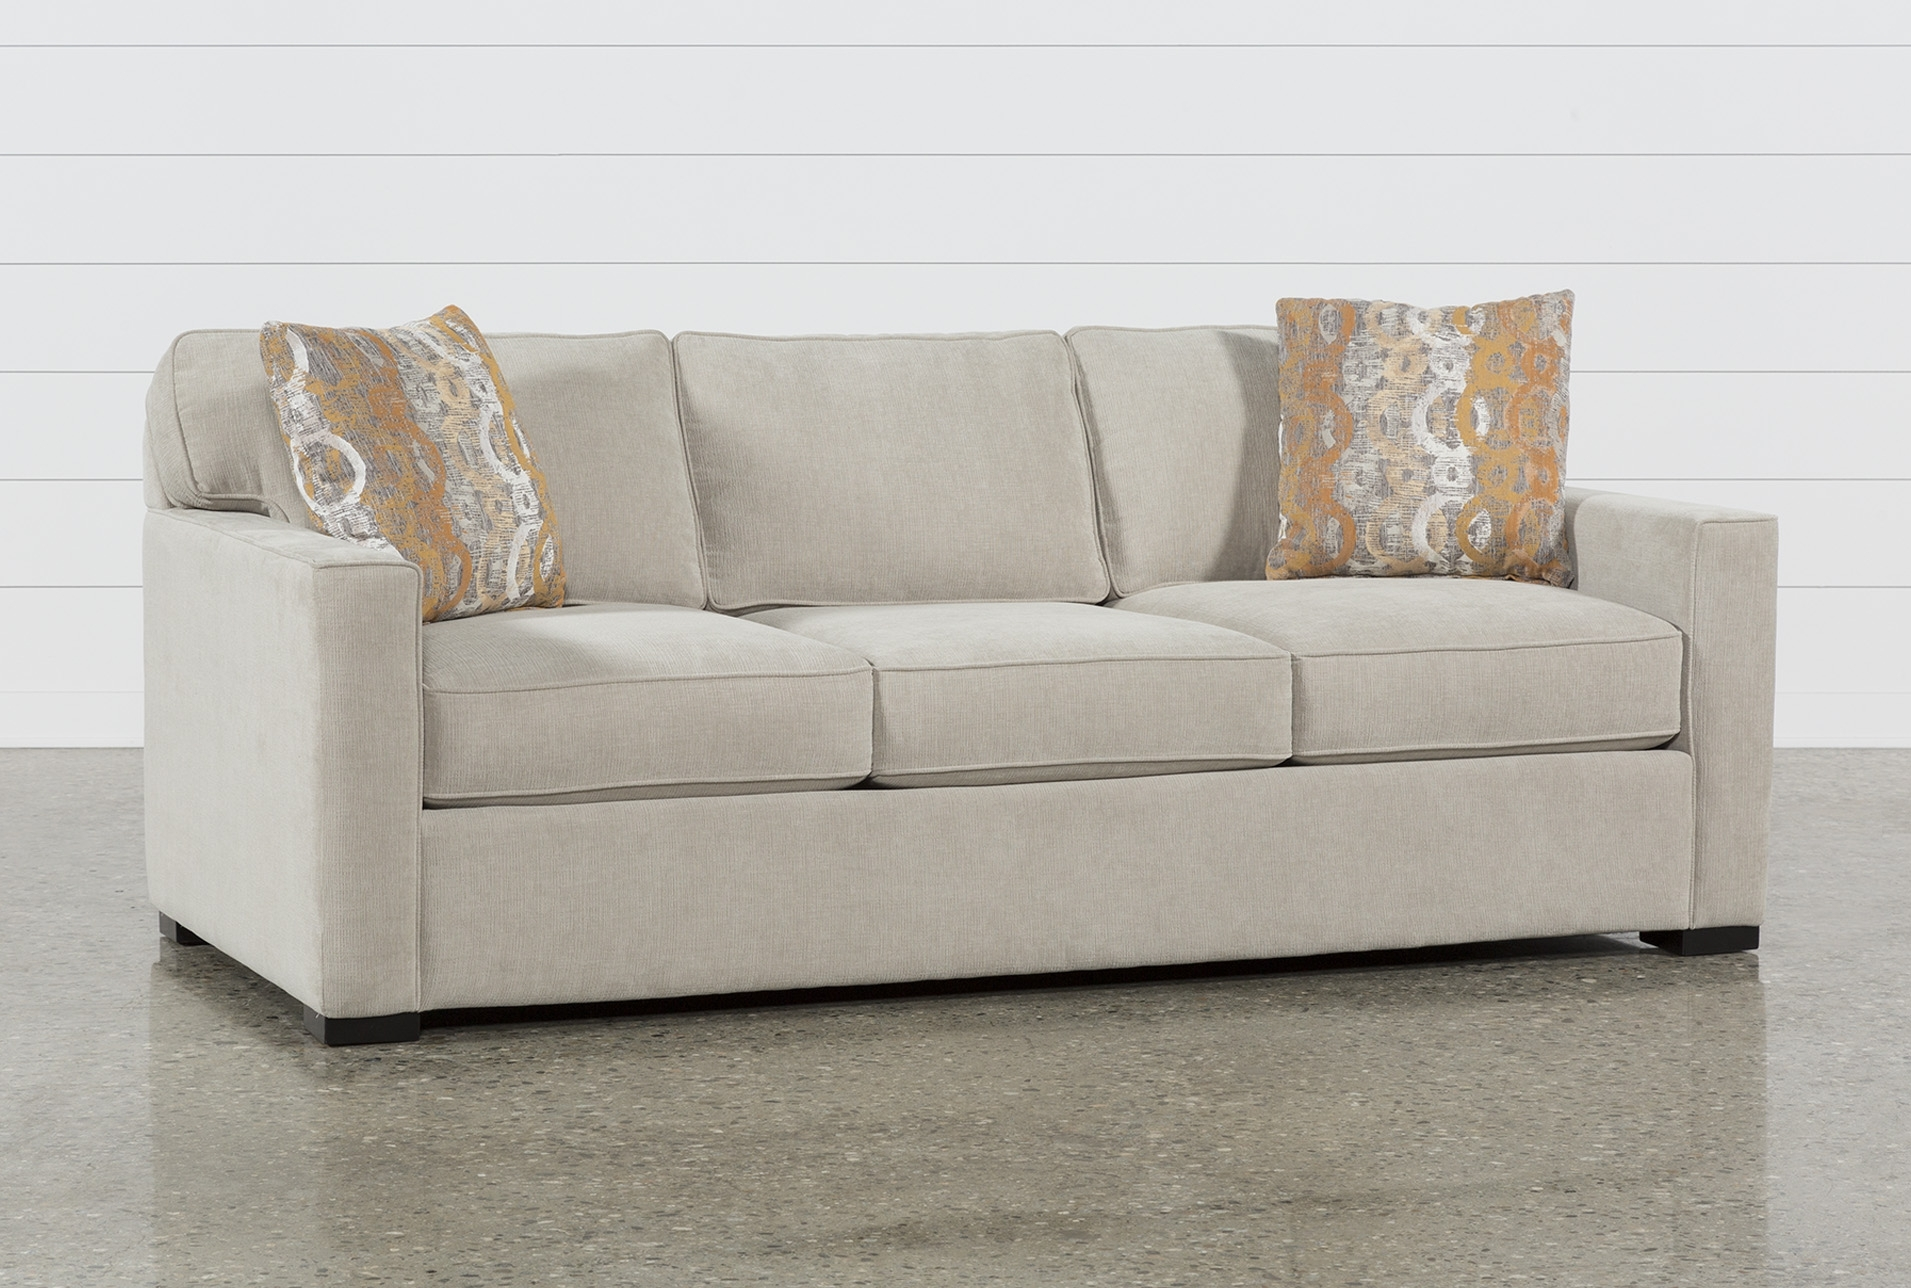 Outdoor Pompeii 3 Piece Sectional for Whitley 3 Piece Sectionals by Nate Berkus and Jeremiah Brent